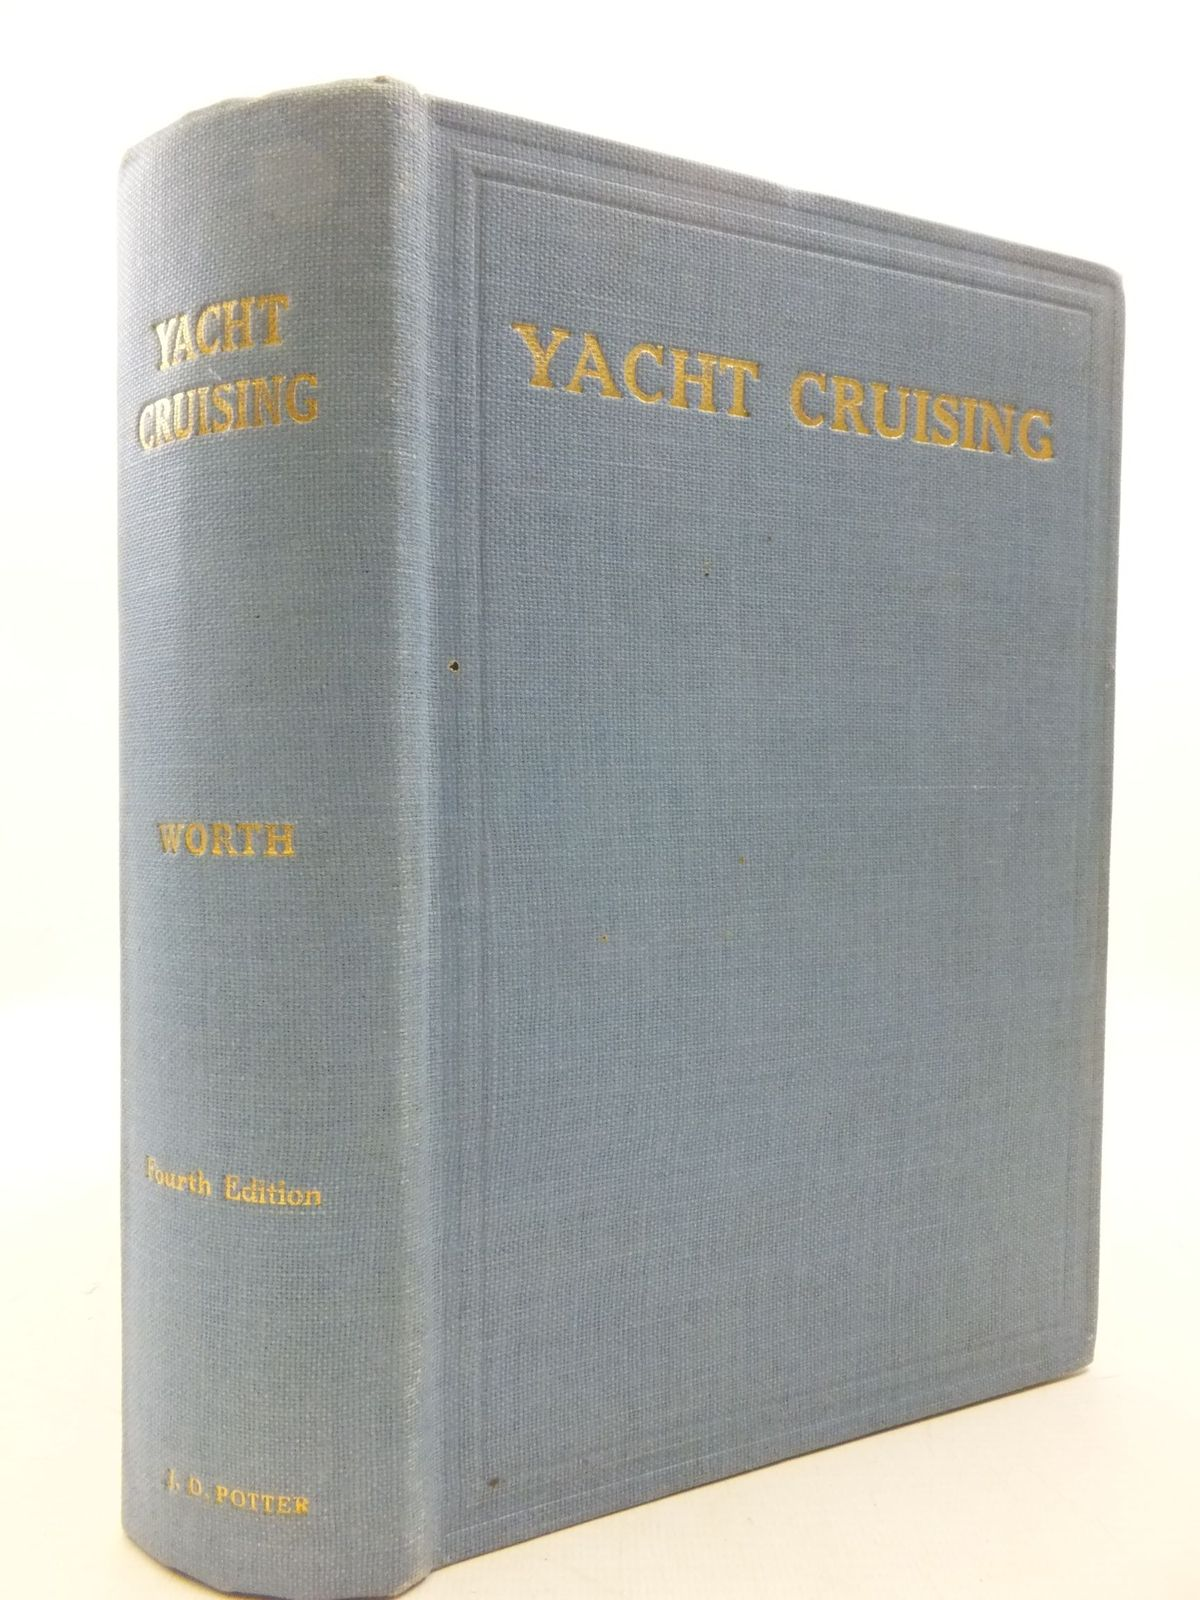 Photo of YACHT CRUISING written by Worth, Claud published by J.D. Potter (STOCK CODE: 2112241)  for sale by Stella & Rose's Books